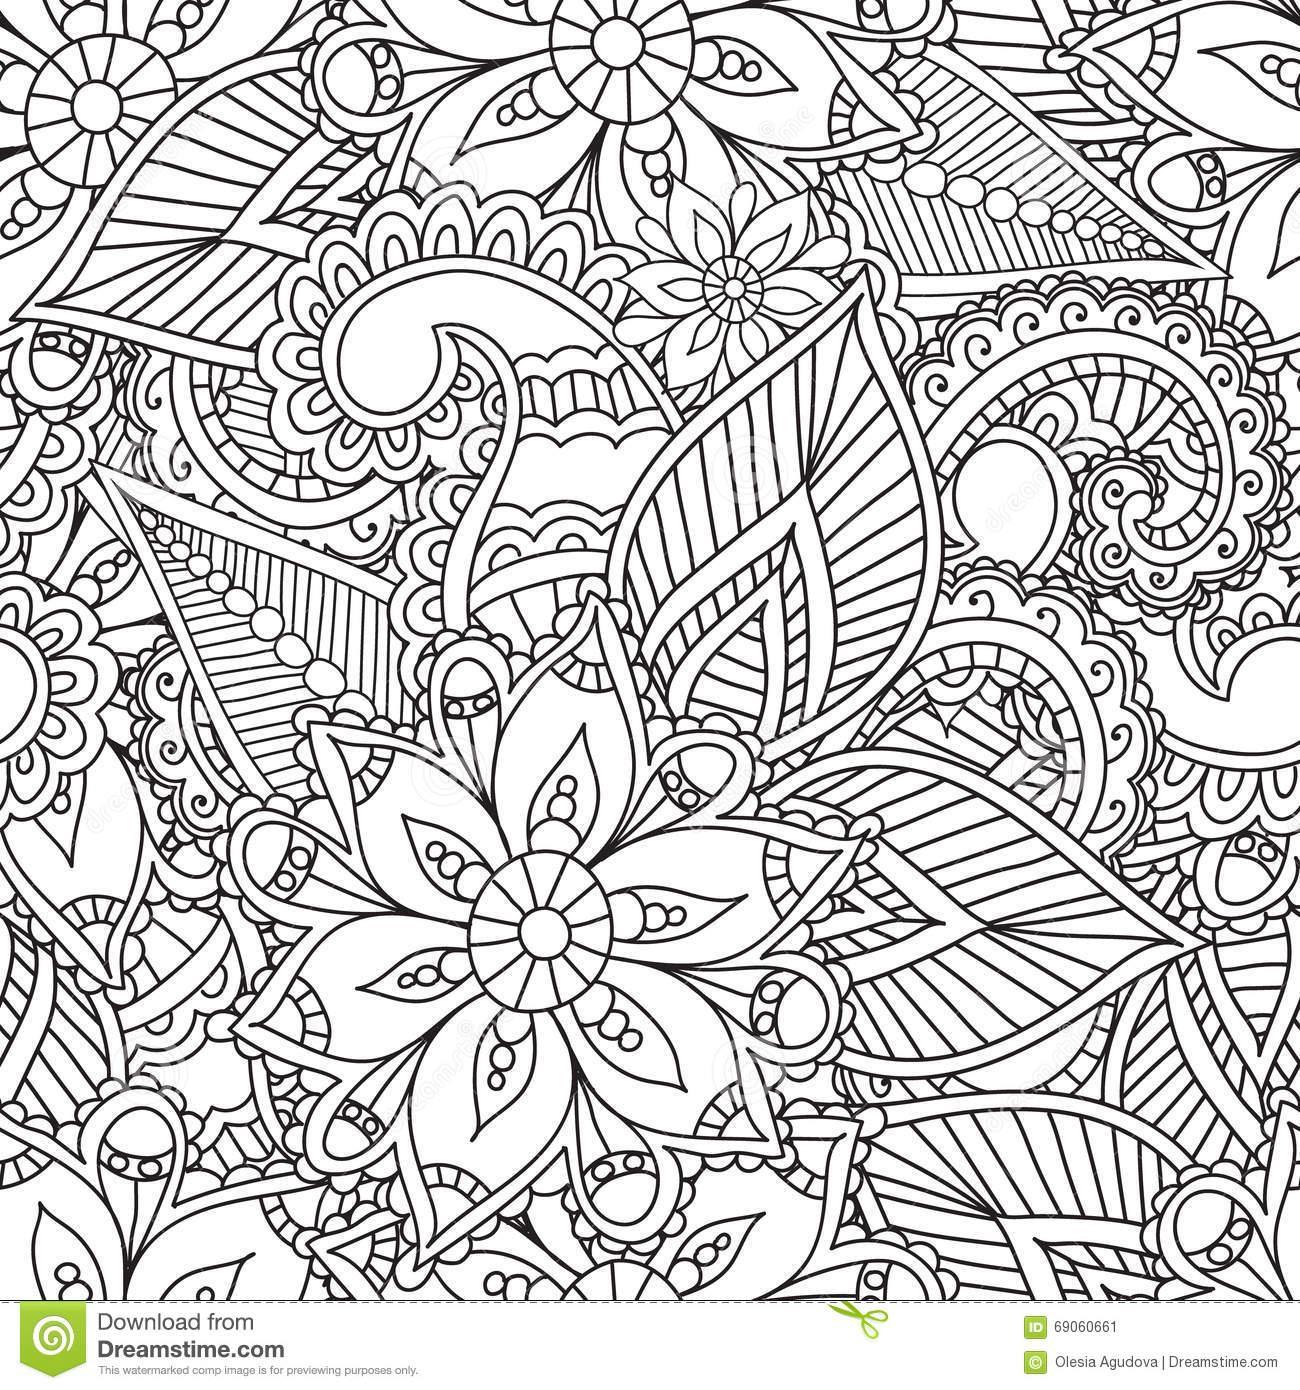 abstract coloring floral henna illustration pages - Abstract Coloring Pages Adults